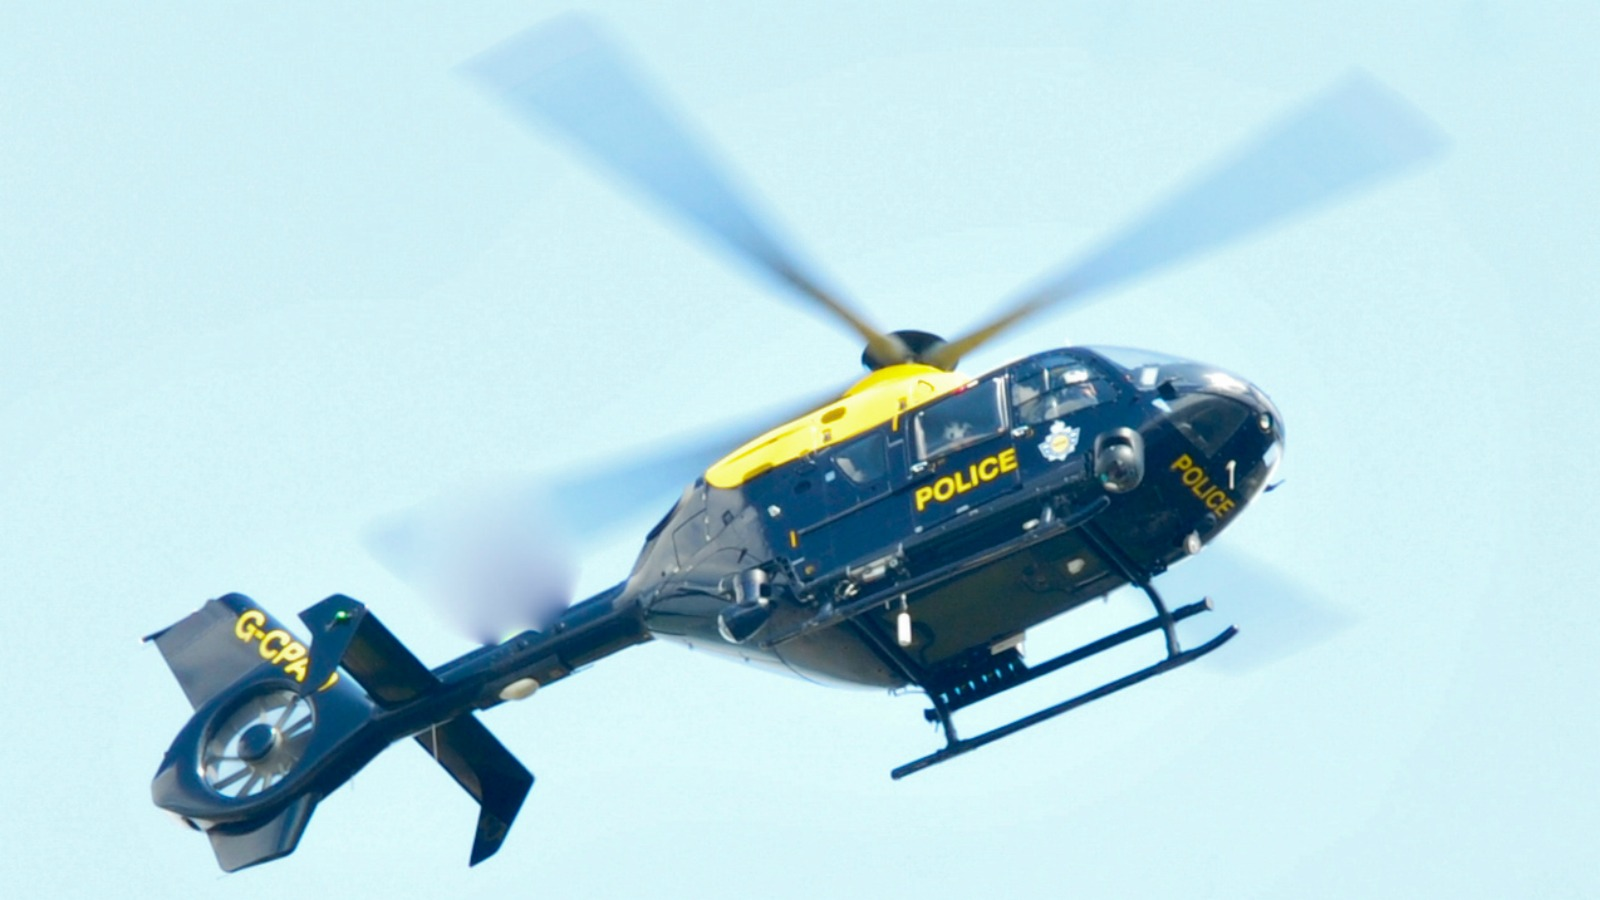 North Wales and Cheshire Police helicopter